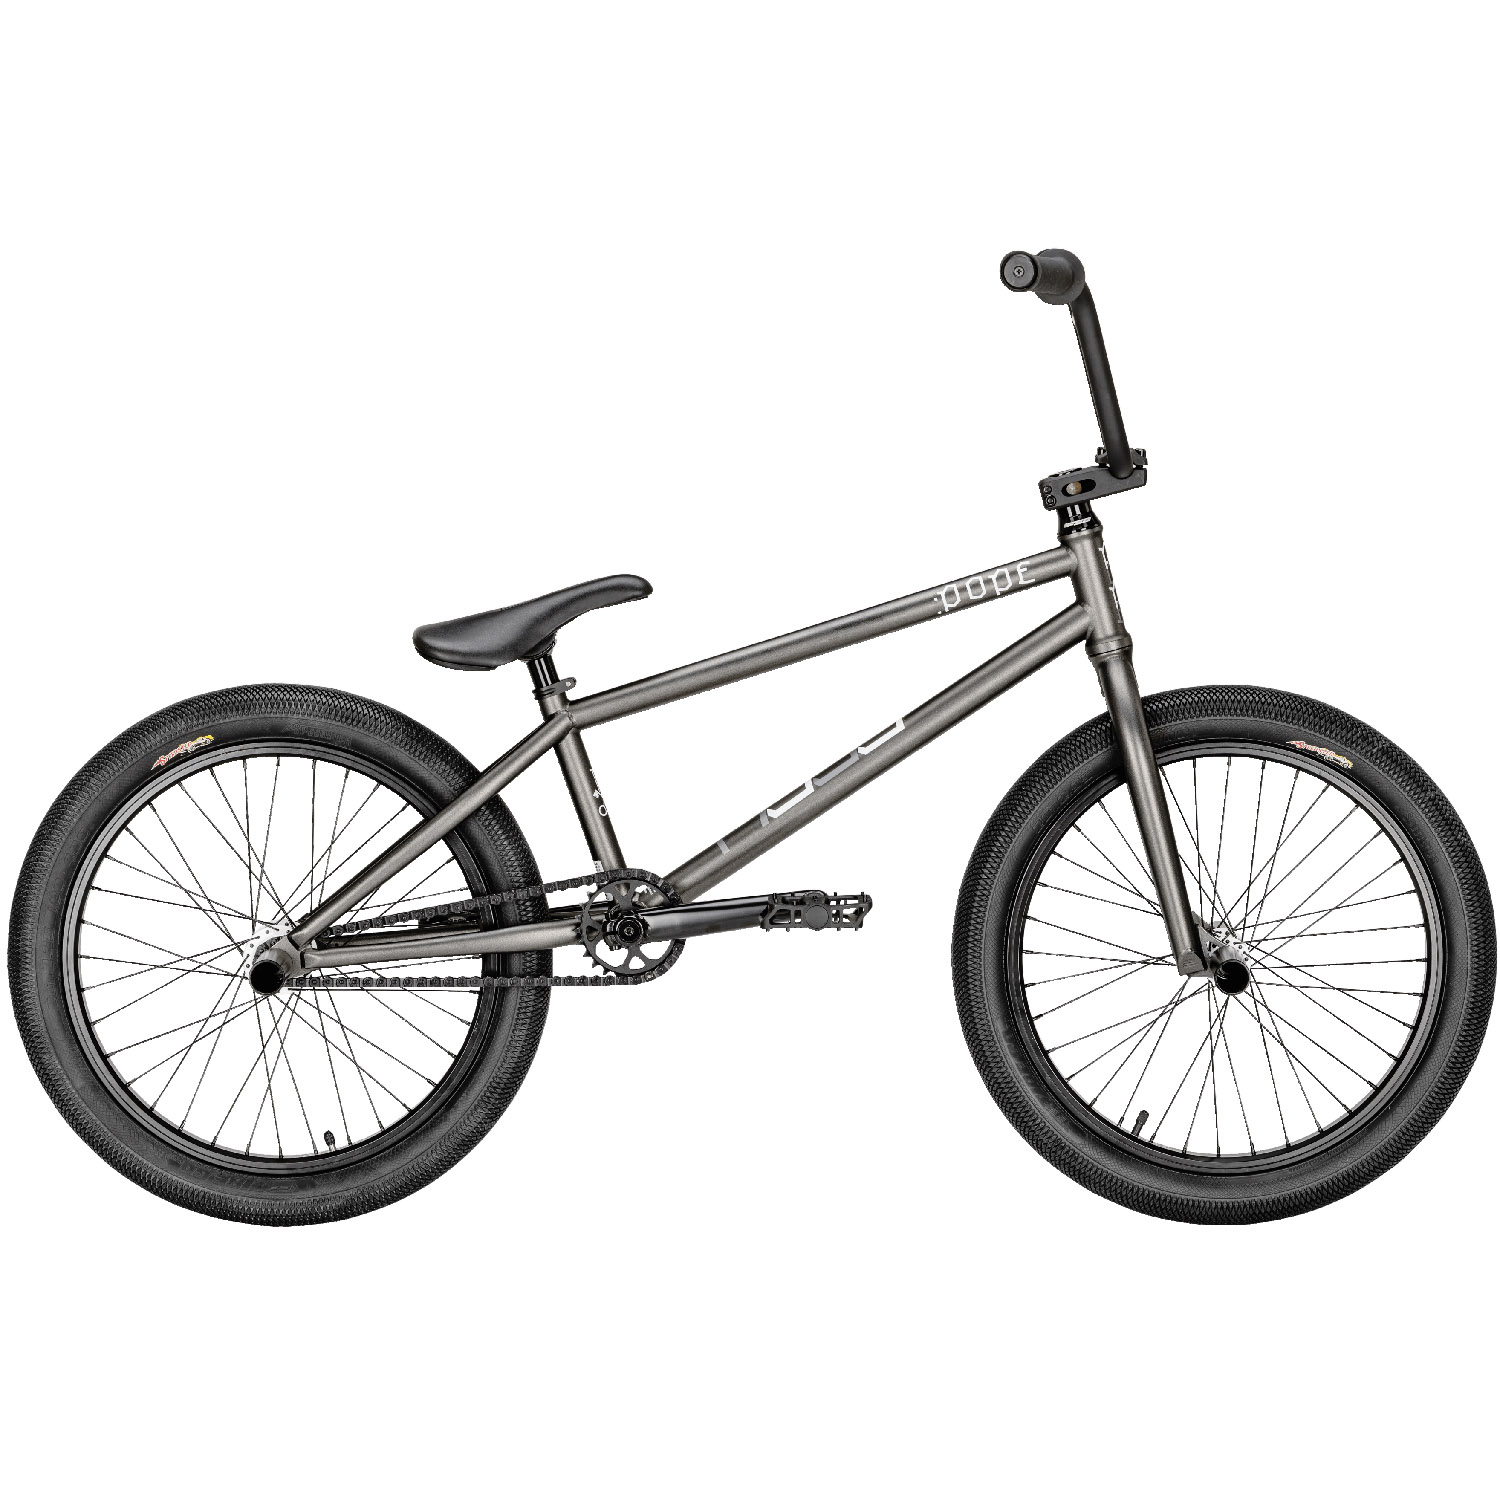 bulls pope street bmx bike 20 zoll online shop zweirad. Black Bedroom Furniture Sets. Home Design Ideas